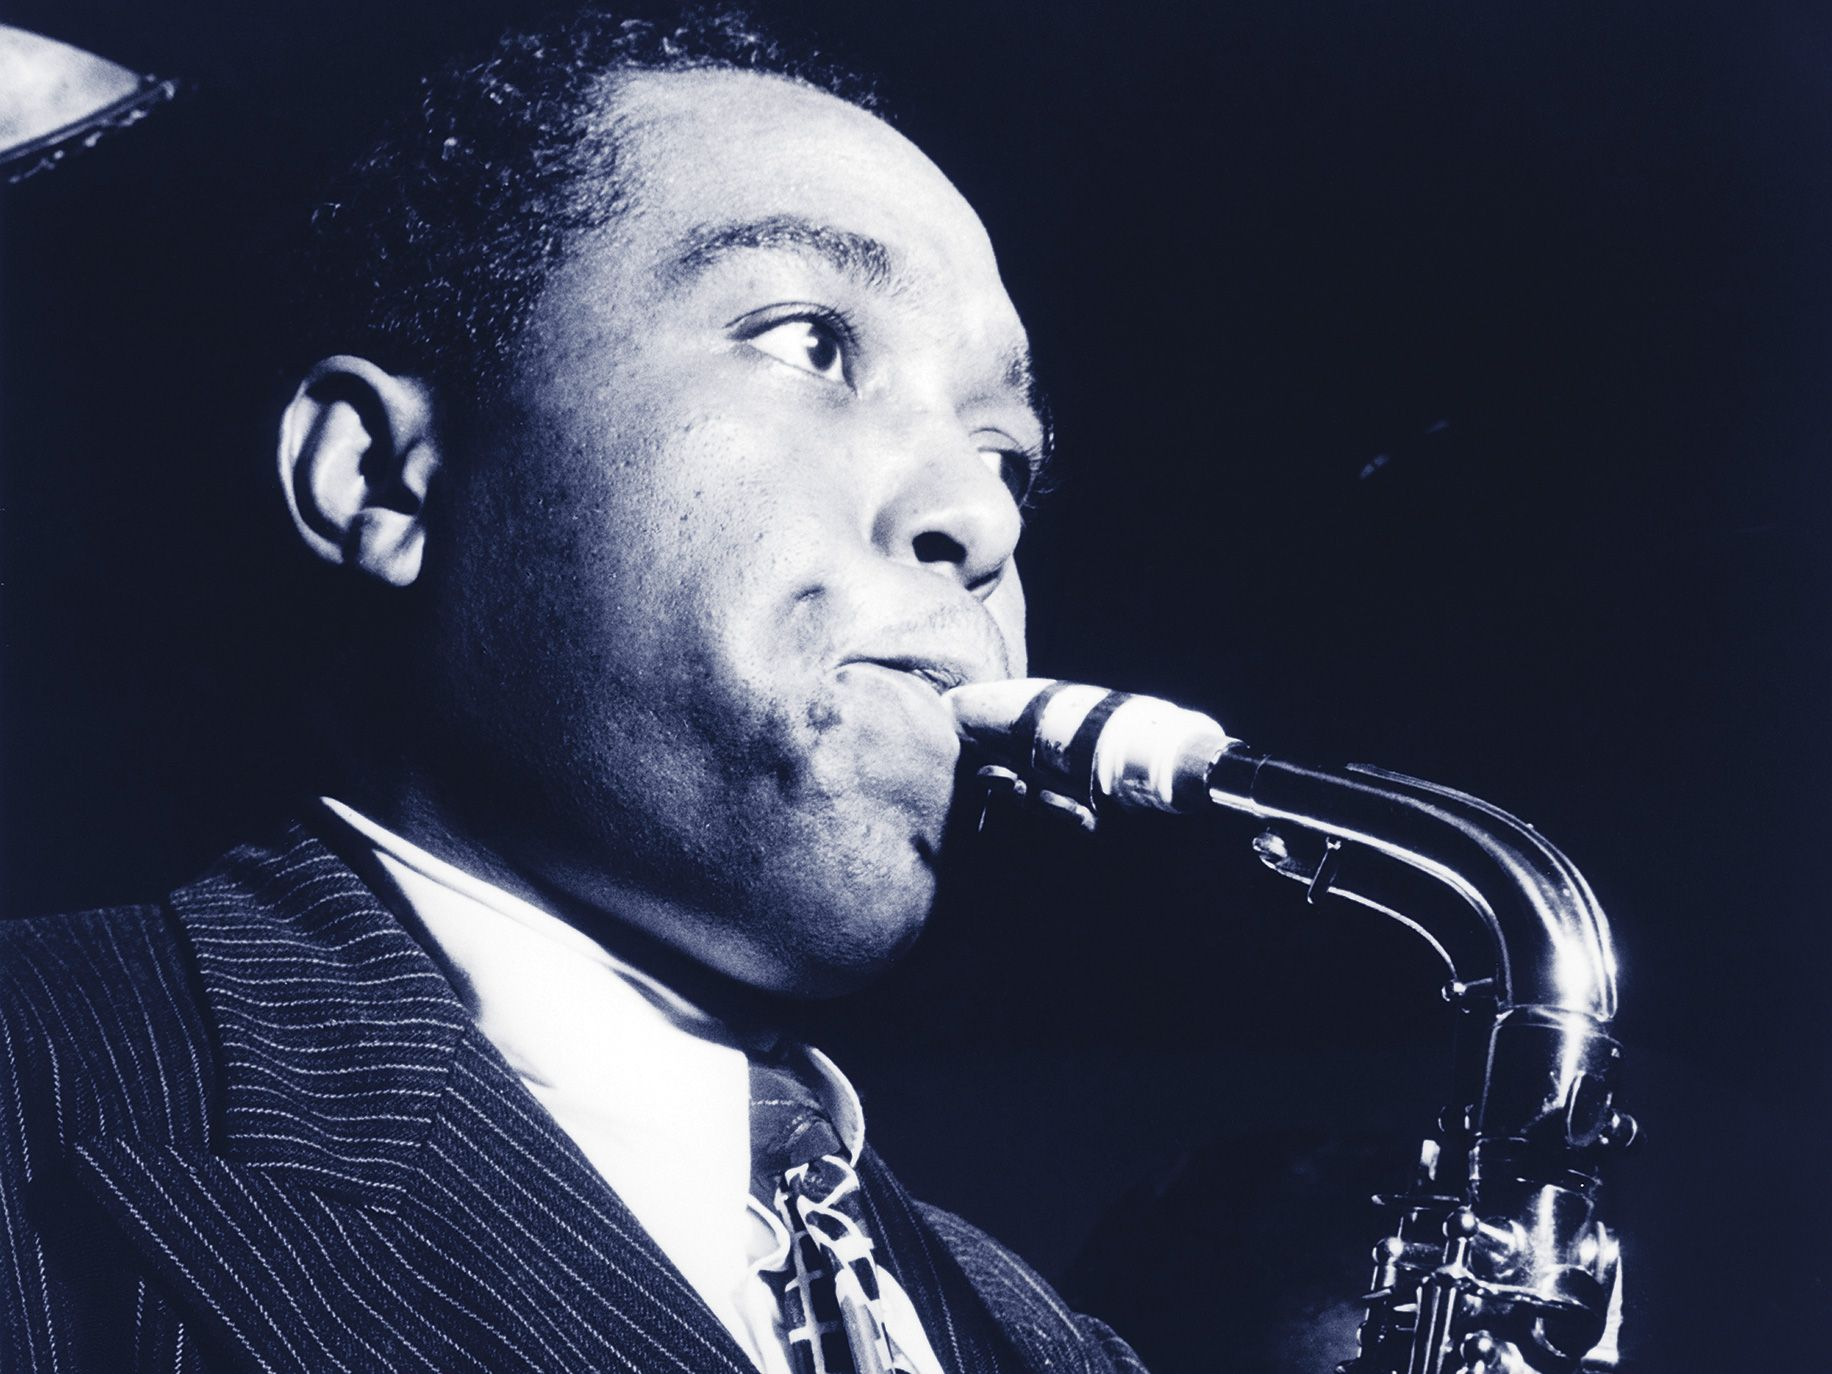 After spending six months in detox at Camarillo State Hospital, a reinvigorated Charlie Parker went to Jack's Basket Room and gave what is considered by many to be the greatest performance of his life.